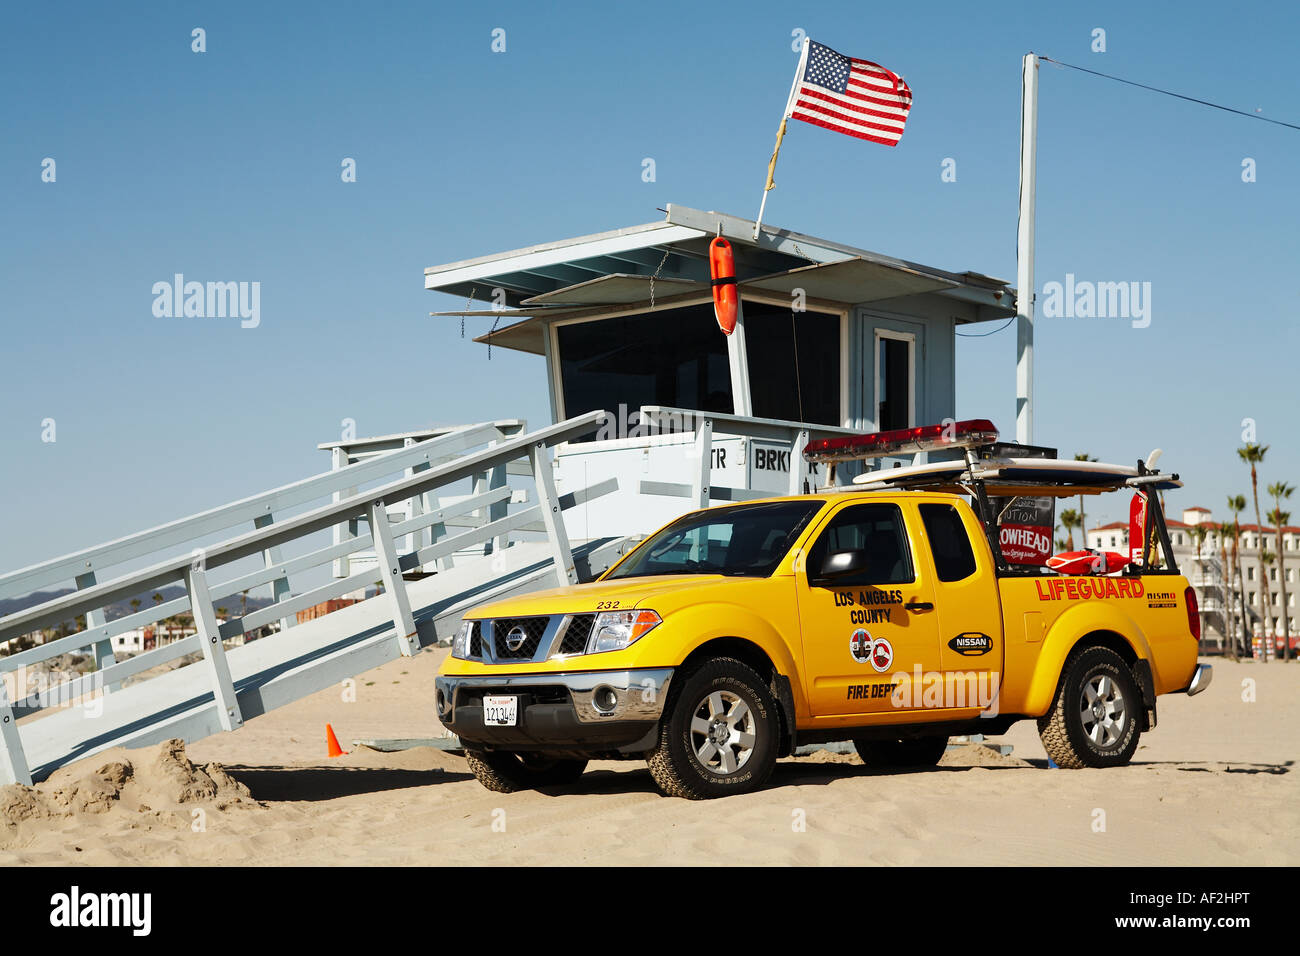 Lifeguard truck with tower venice beach los angeles county california usa